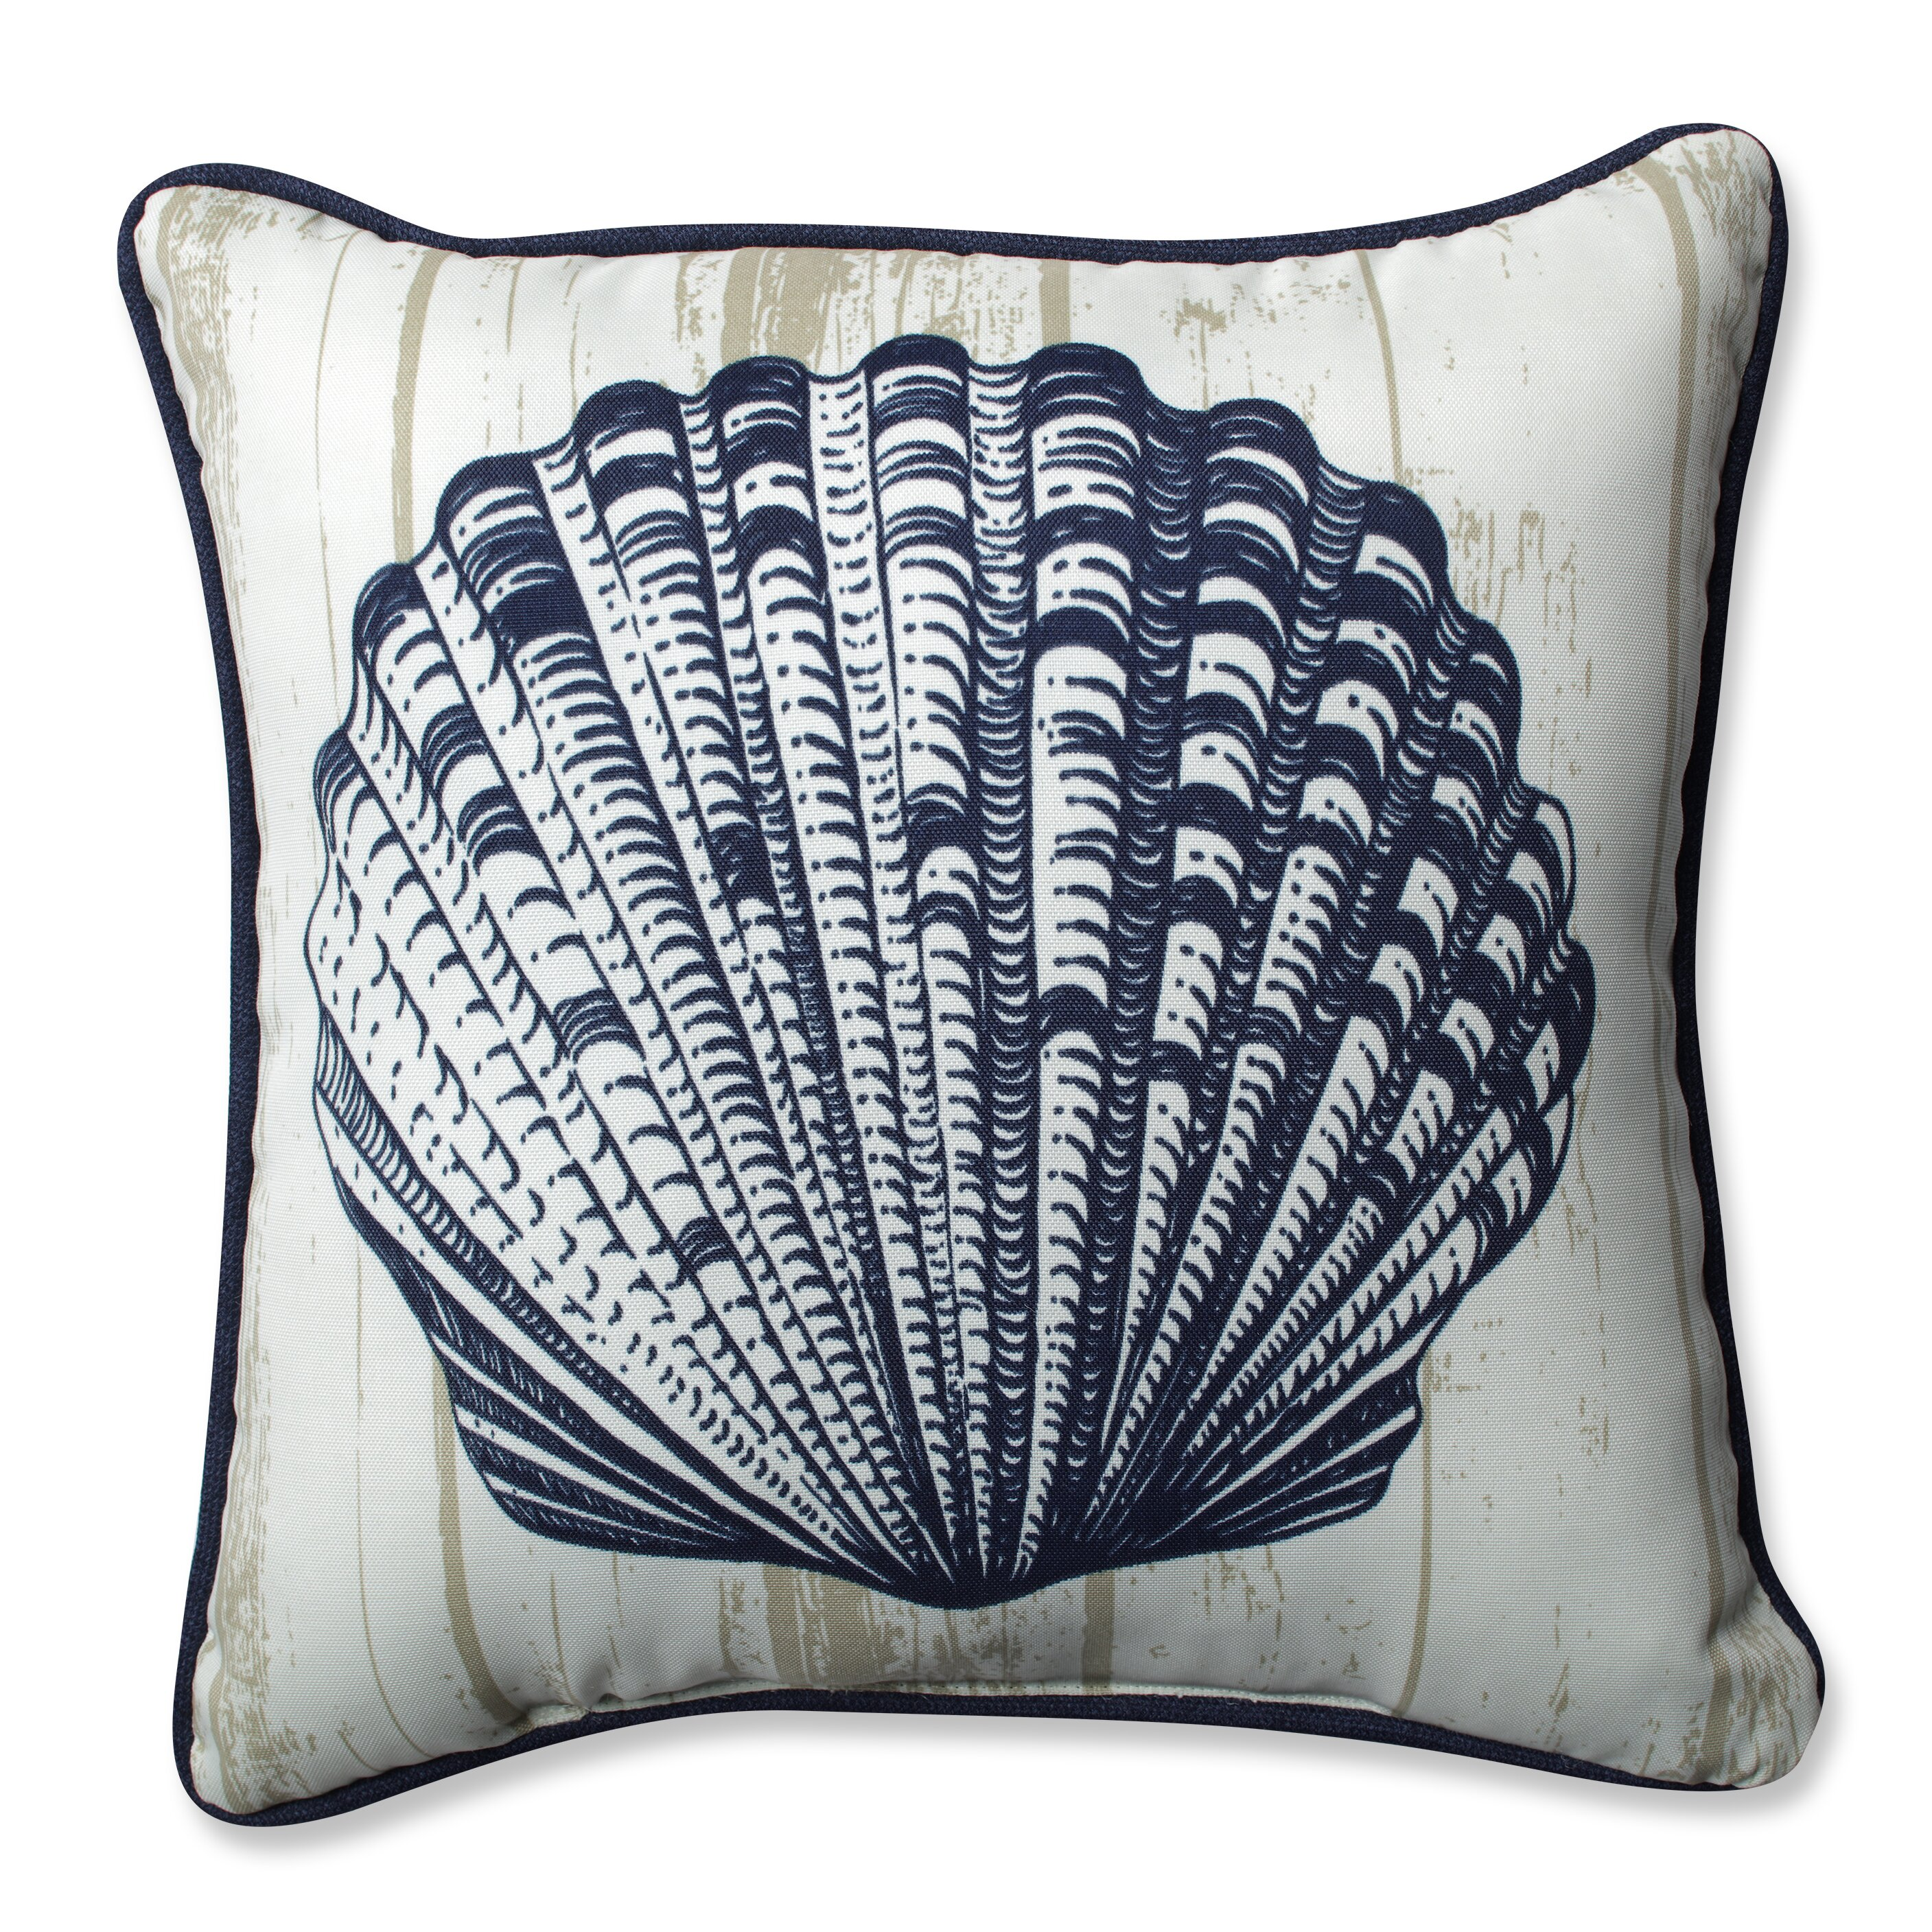 Throw Pillows In Abuja : Pillow Perfect Lakelife Outdoor/Indoor Throw Pillow Wayfair